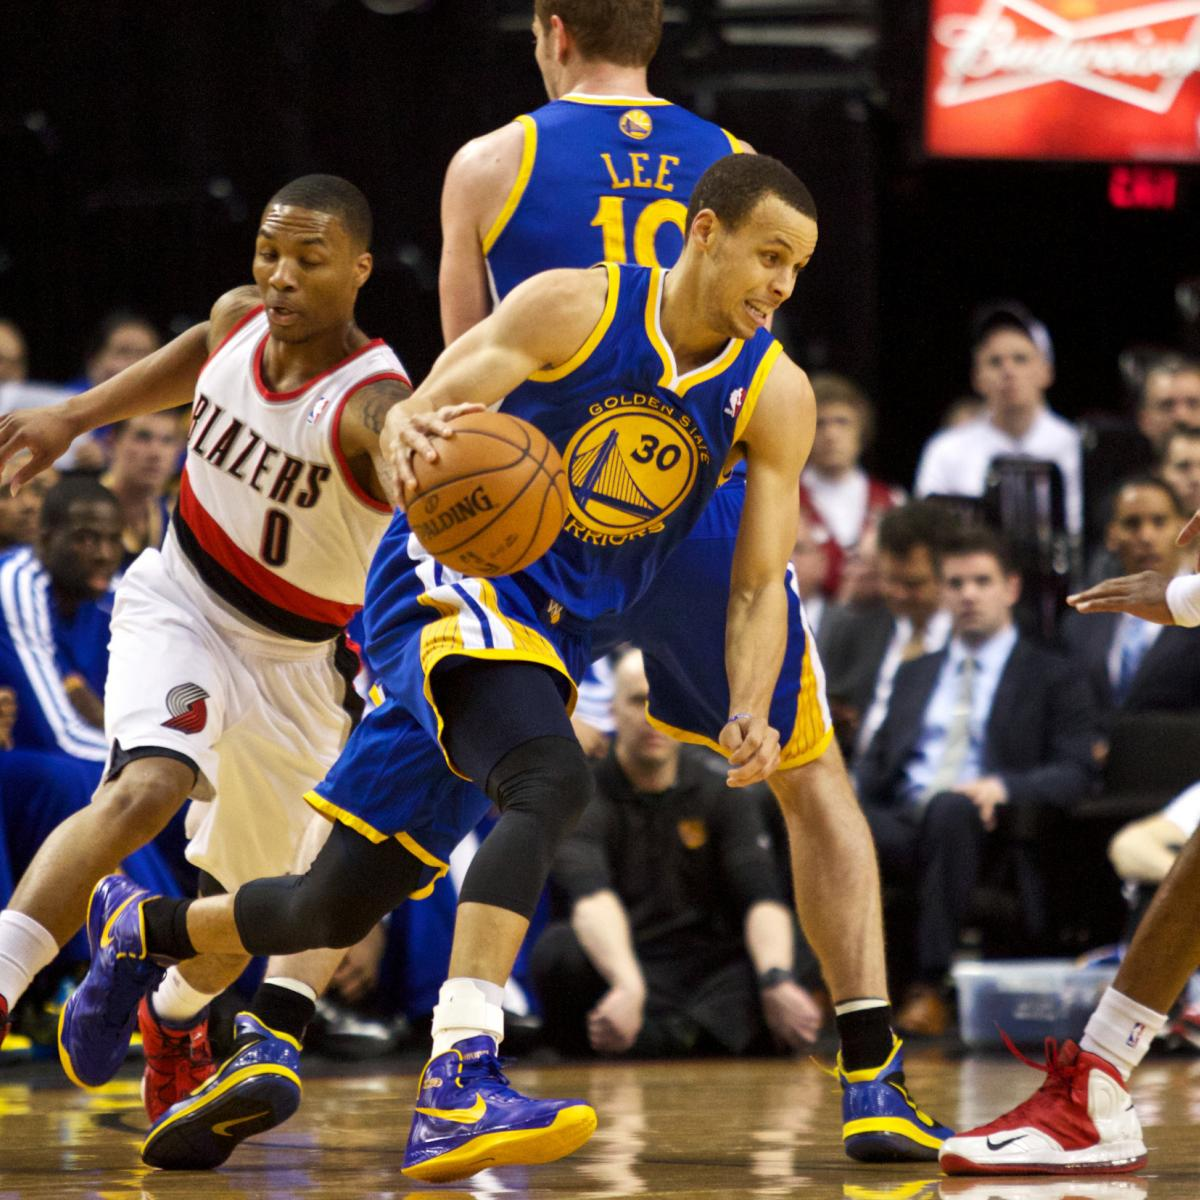 Blazer Team Roster 2013: Golden State Warriors Preview 2013-14: Lineup, Roster